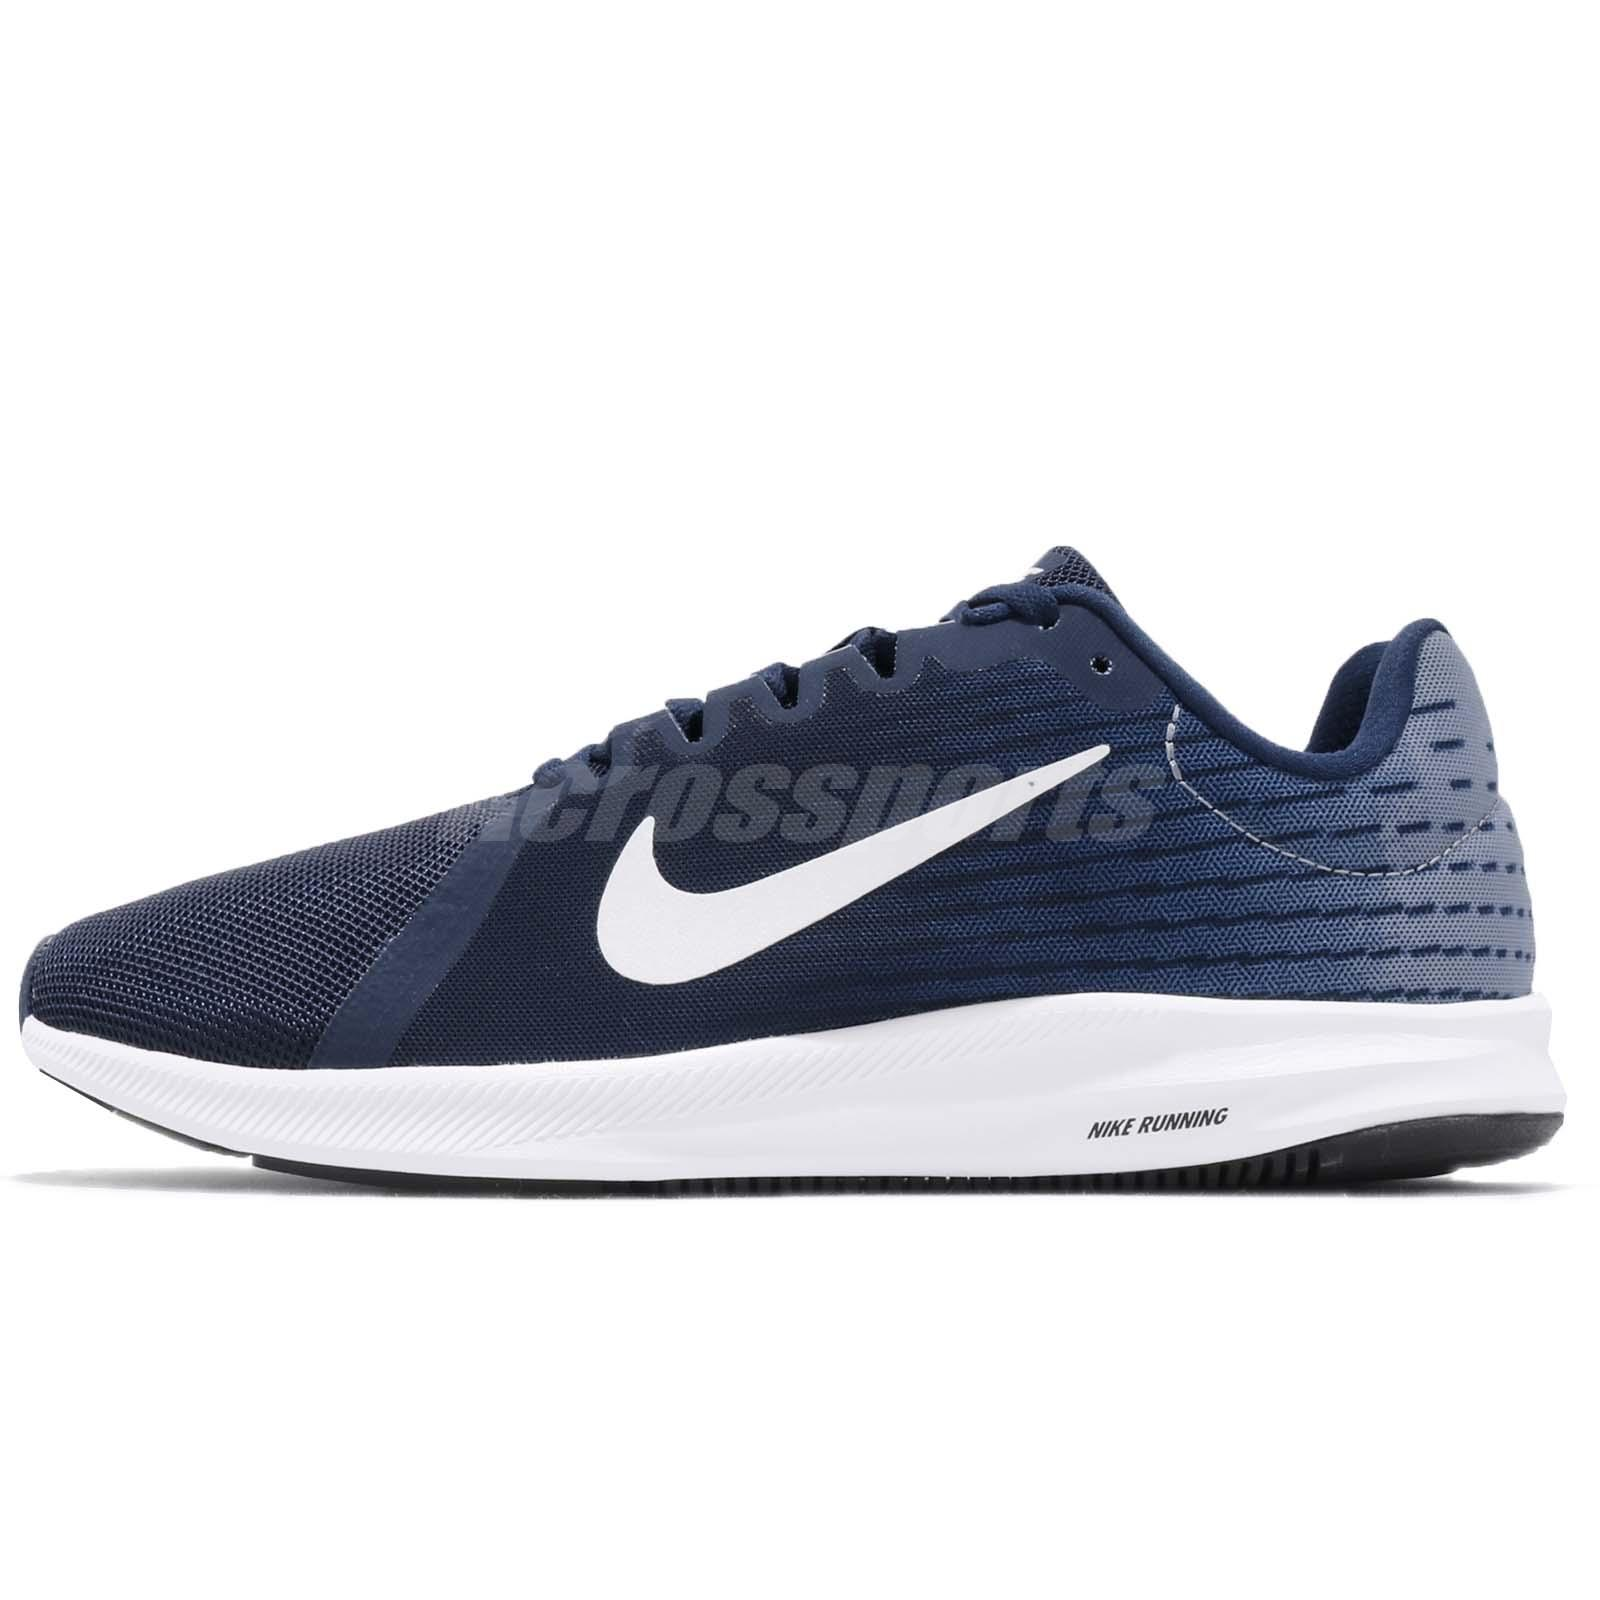 more photos 6e1c2 22849 Nike Downshifter 8 VIII Blue Void White Men Running Shoes Sneakers  908984-404